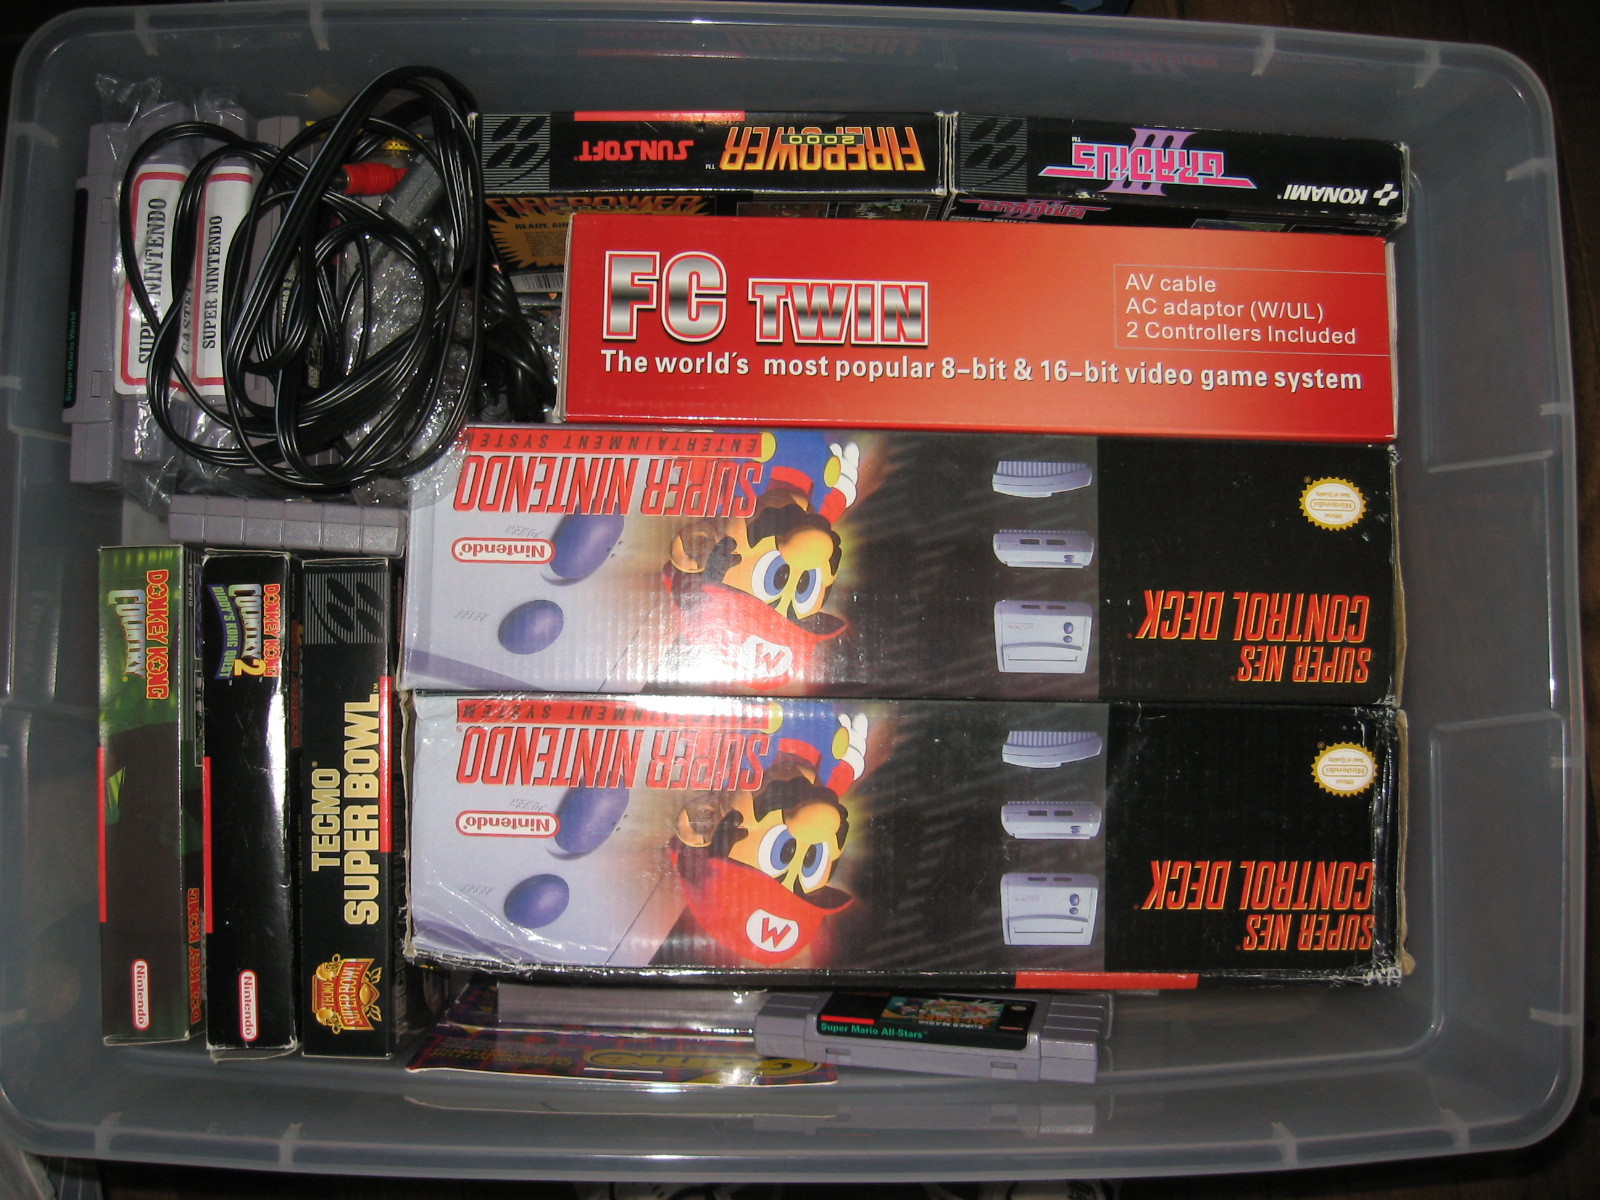 SNES 'Mini' and FC Twin System New In Box - Buy, Sell, and